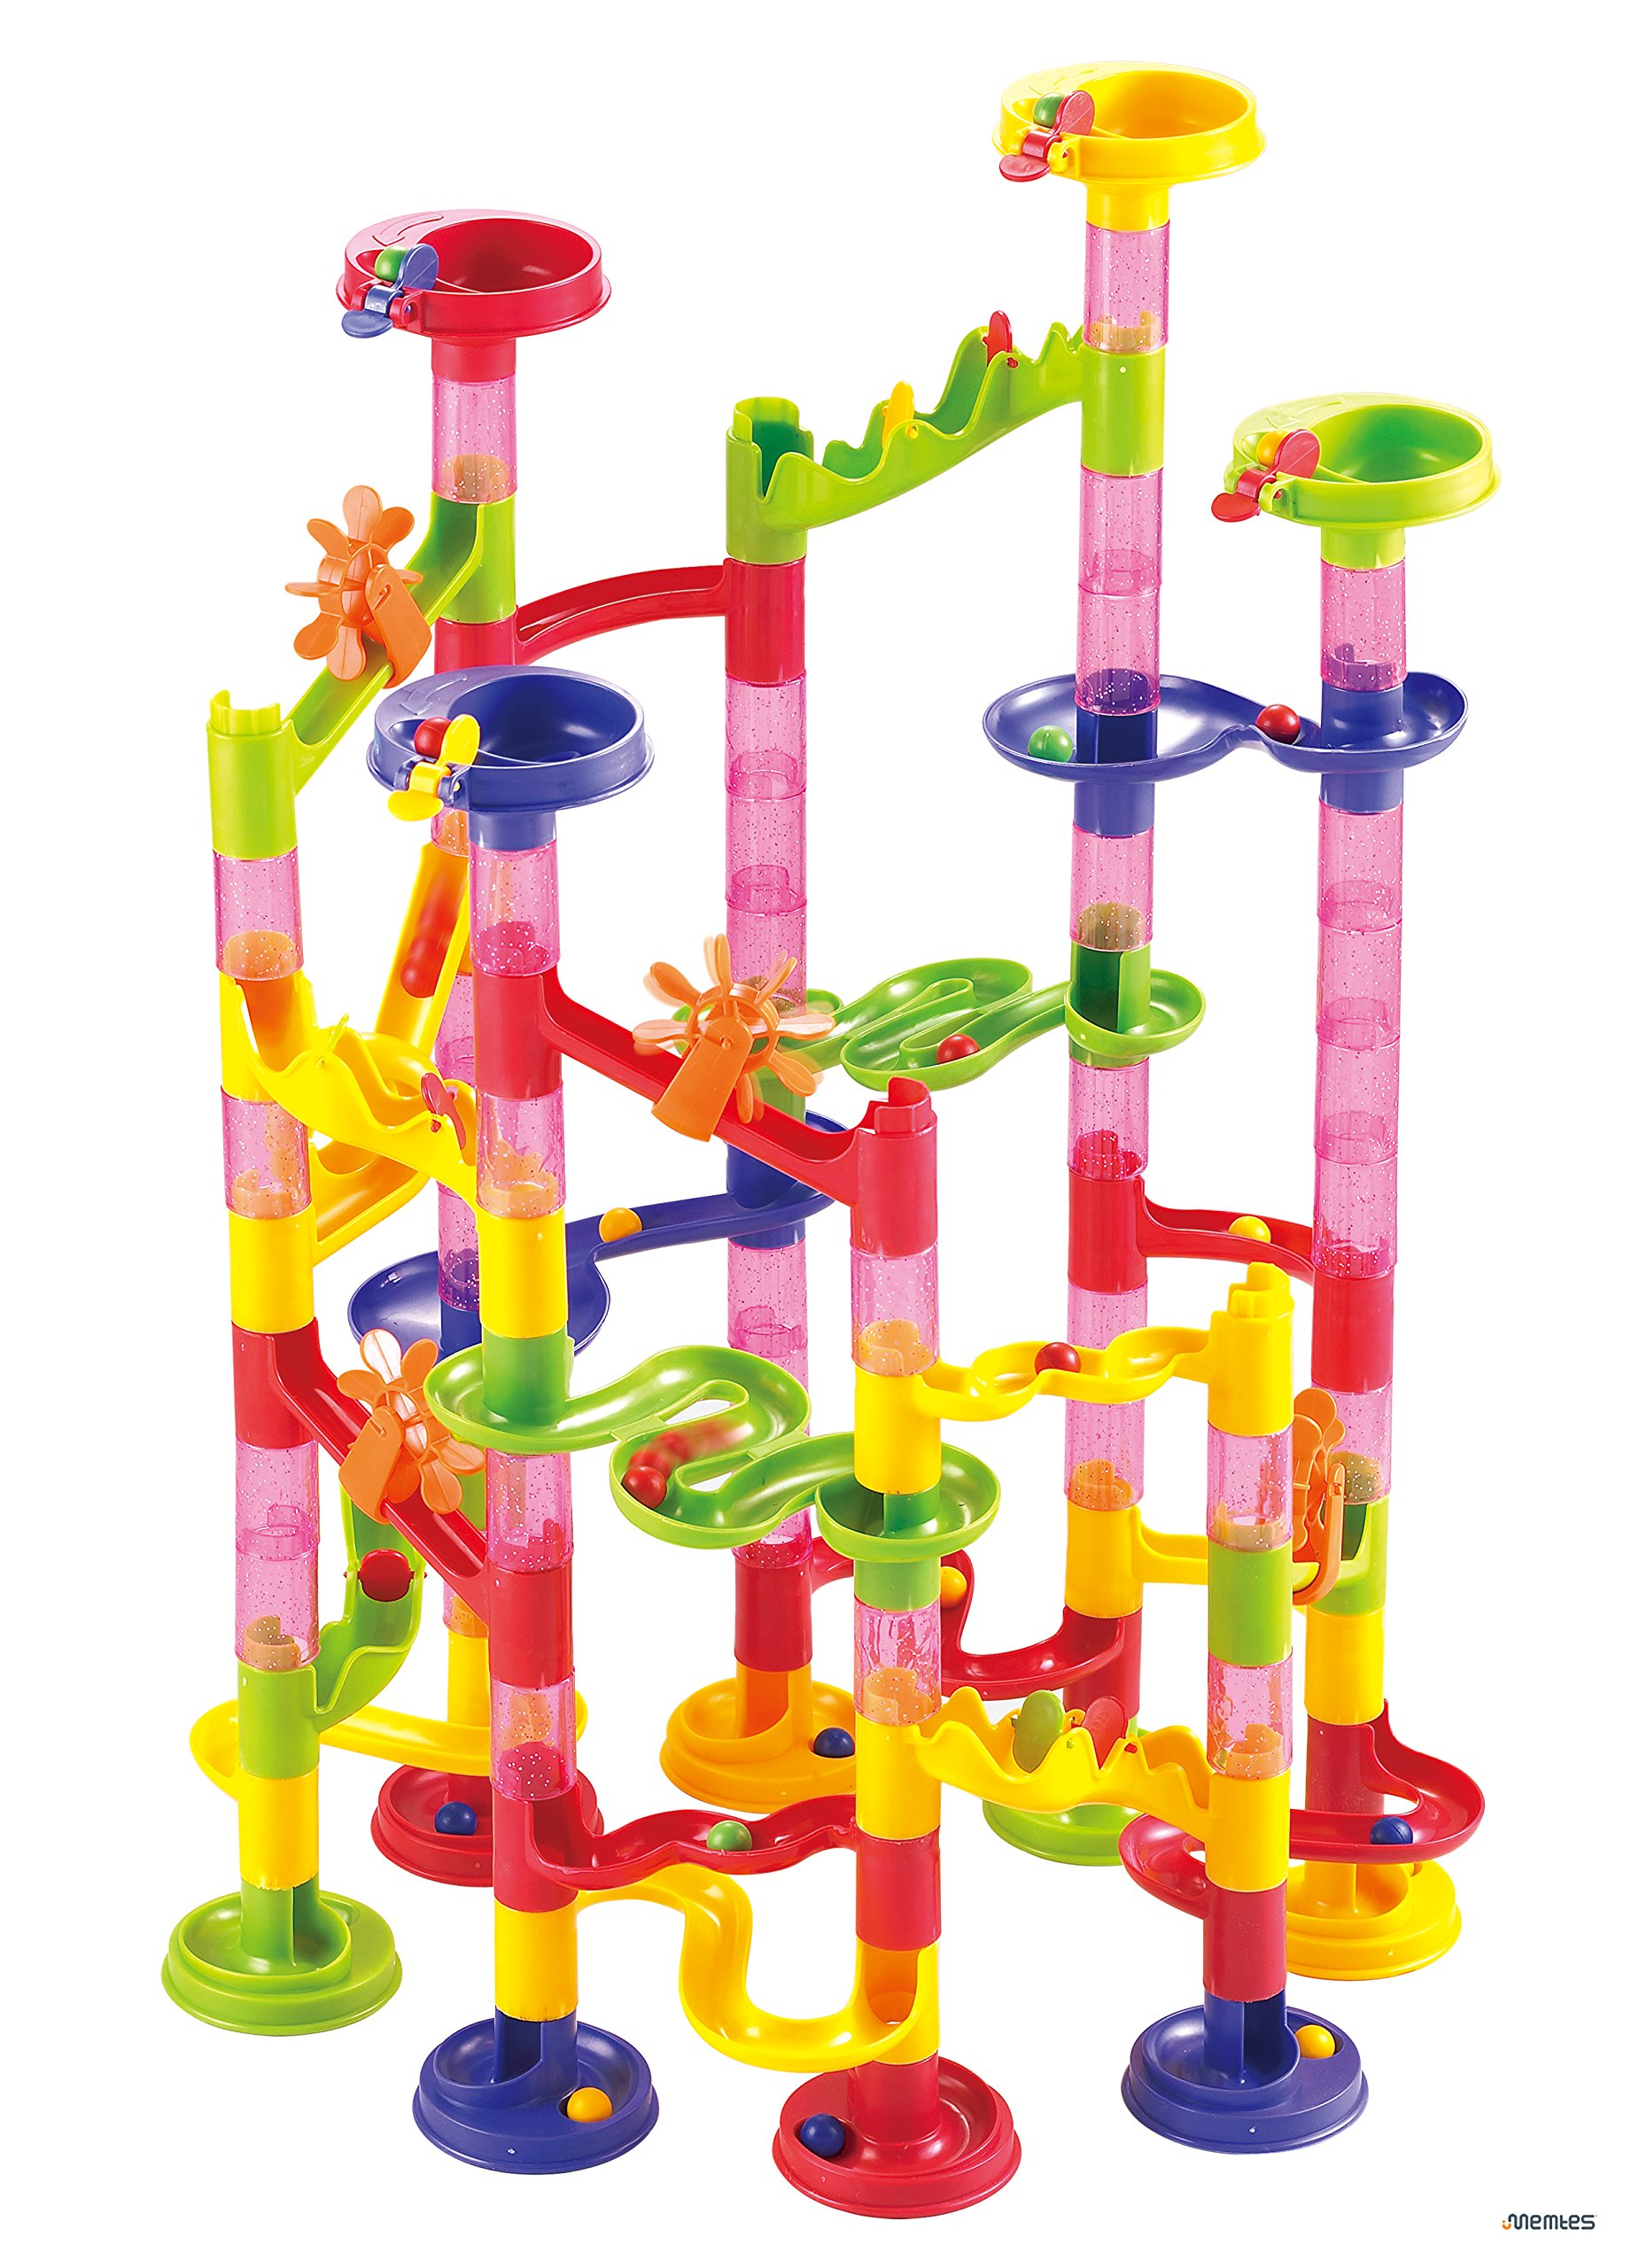 Memtes Marble Run Race Coaster 105 Piece Set with 75 Building Blocks Plus 30 Race Marbles Learning Railway Construction Maze Toy Game